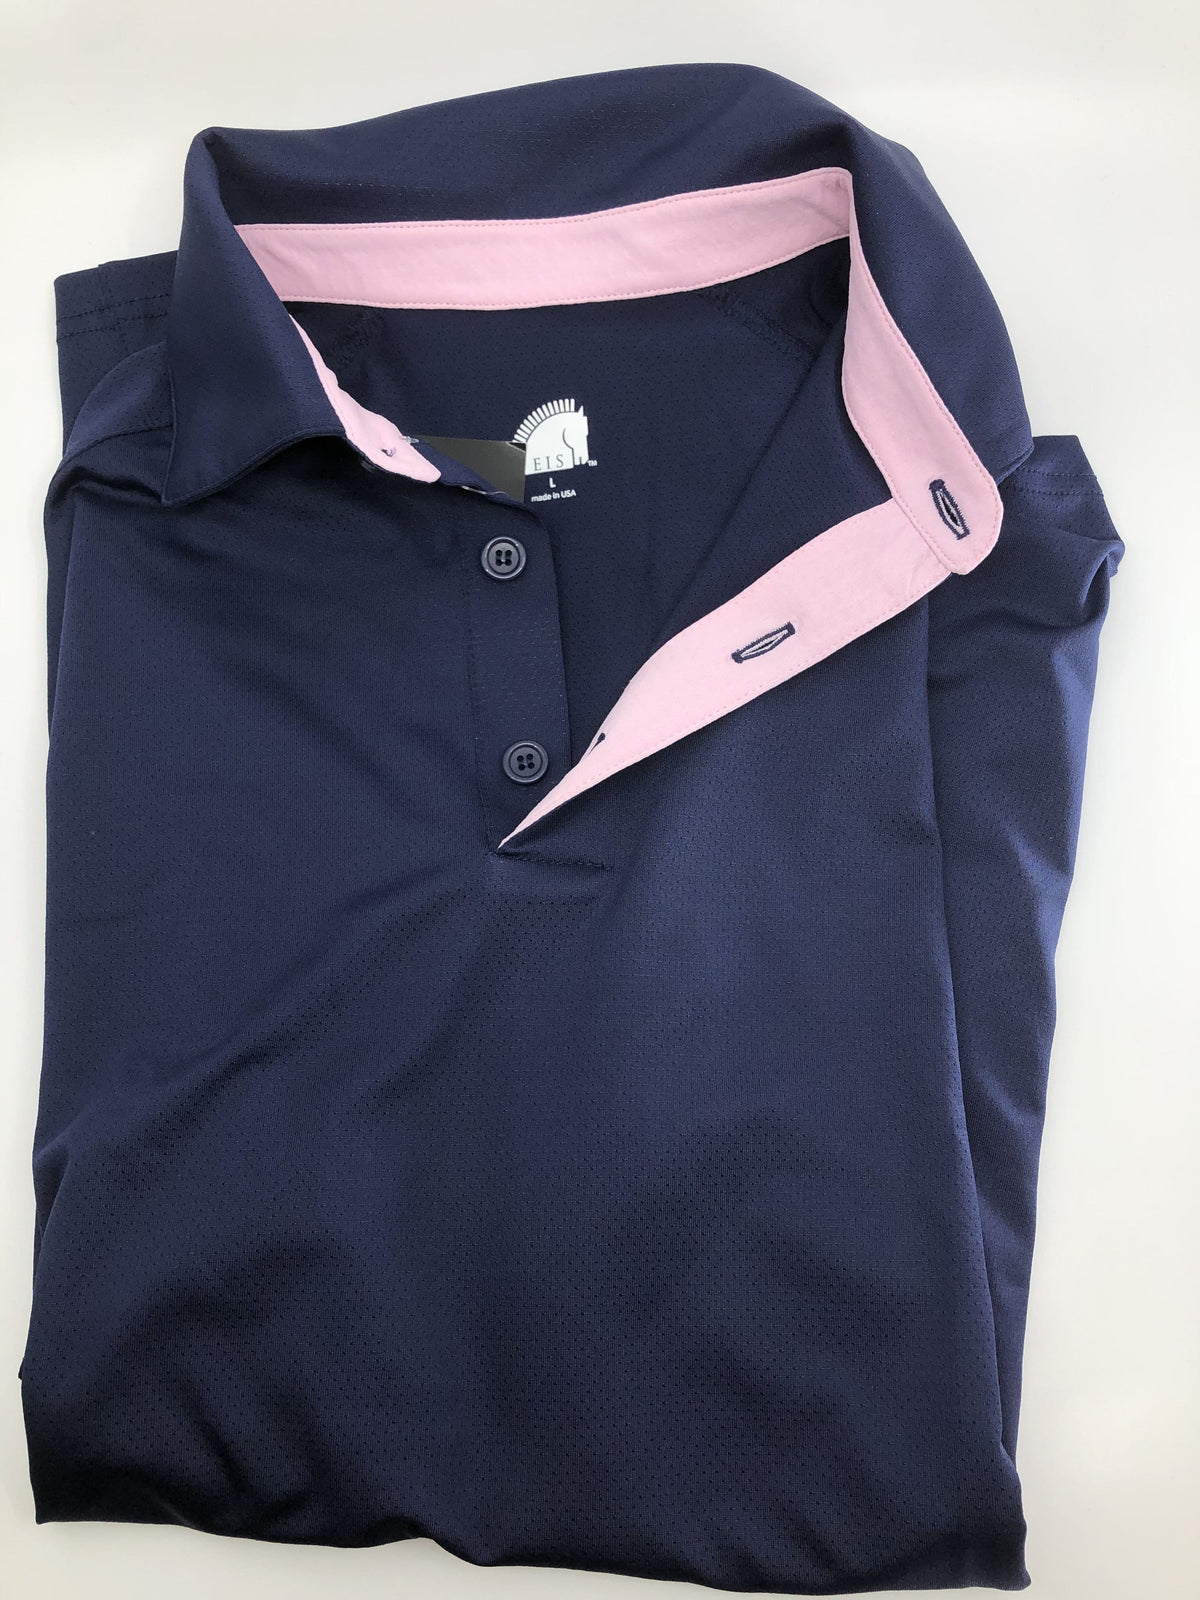 EIS Men's Shirts M/XS Men's Navy/Pink EIS Short Sleece equestrian team apparel online tack store mobile tack store custom farm apparel custom show stable clothing equestrian lifestyle horse show clothing riding clothes horses equestrian tack store